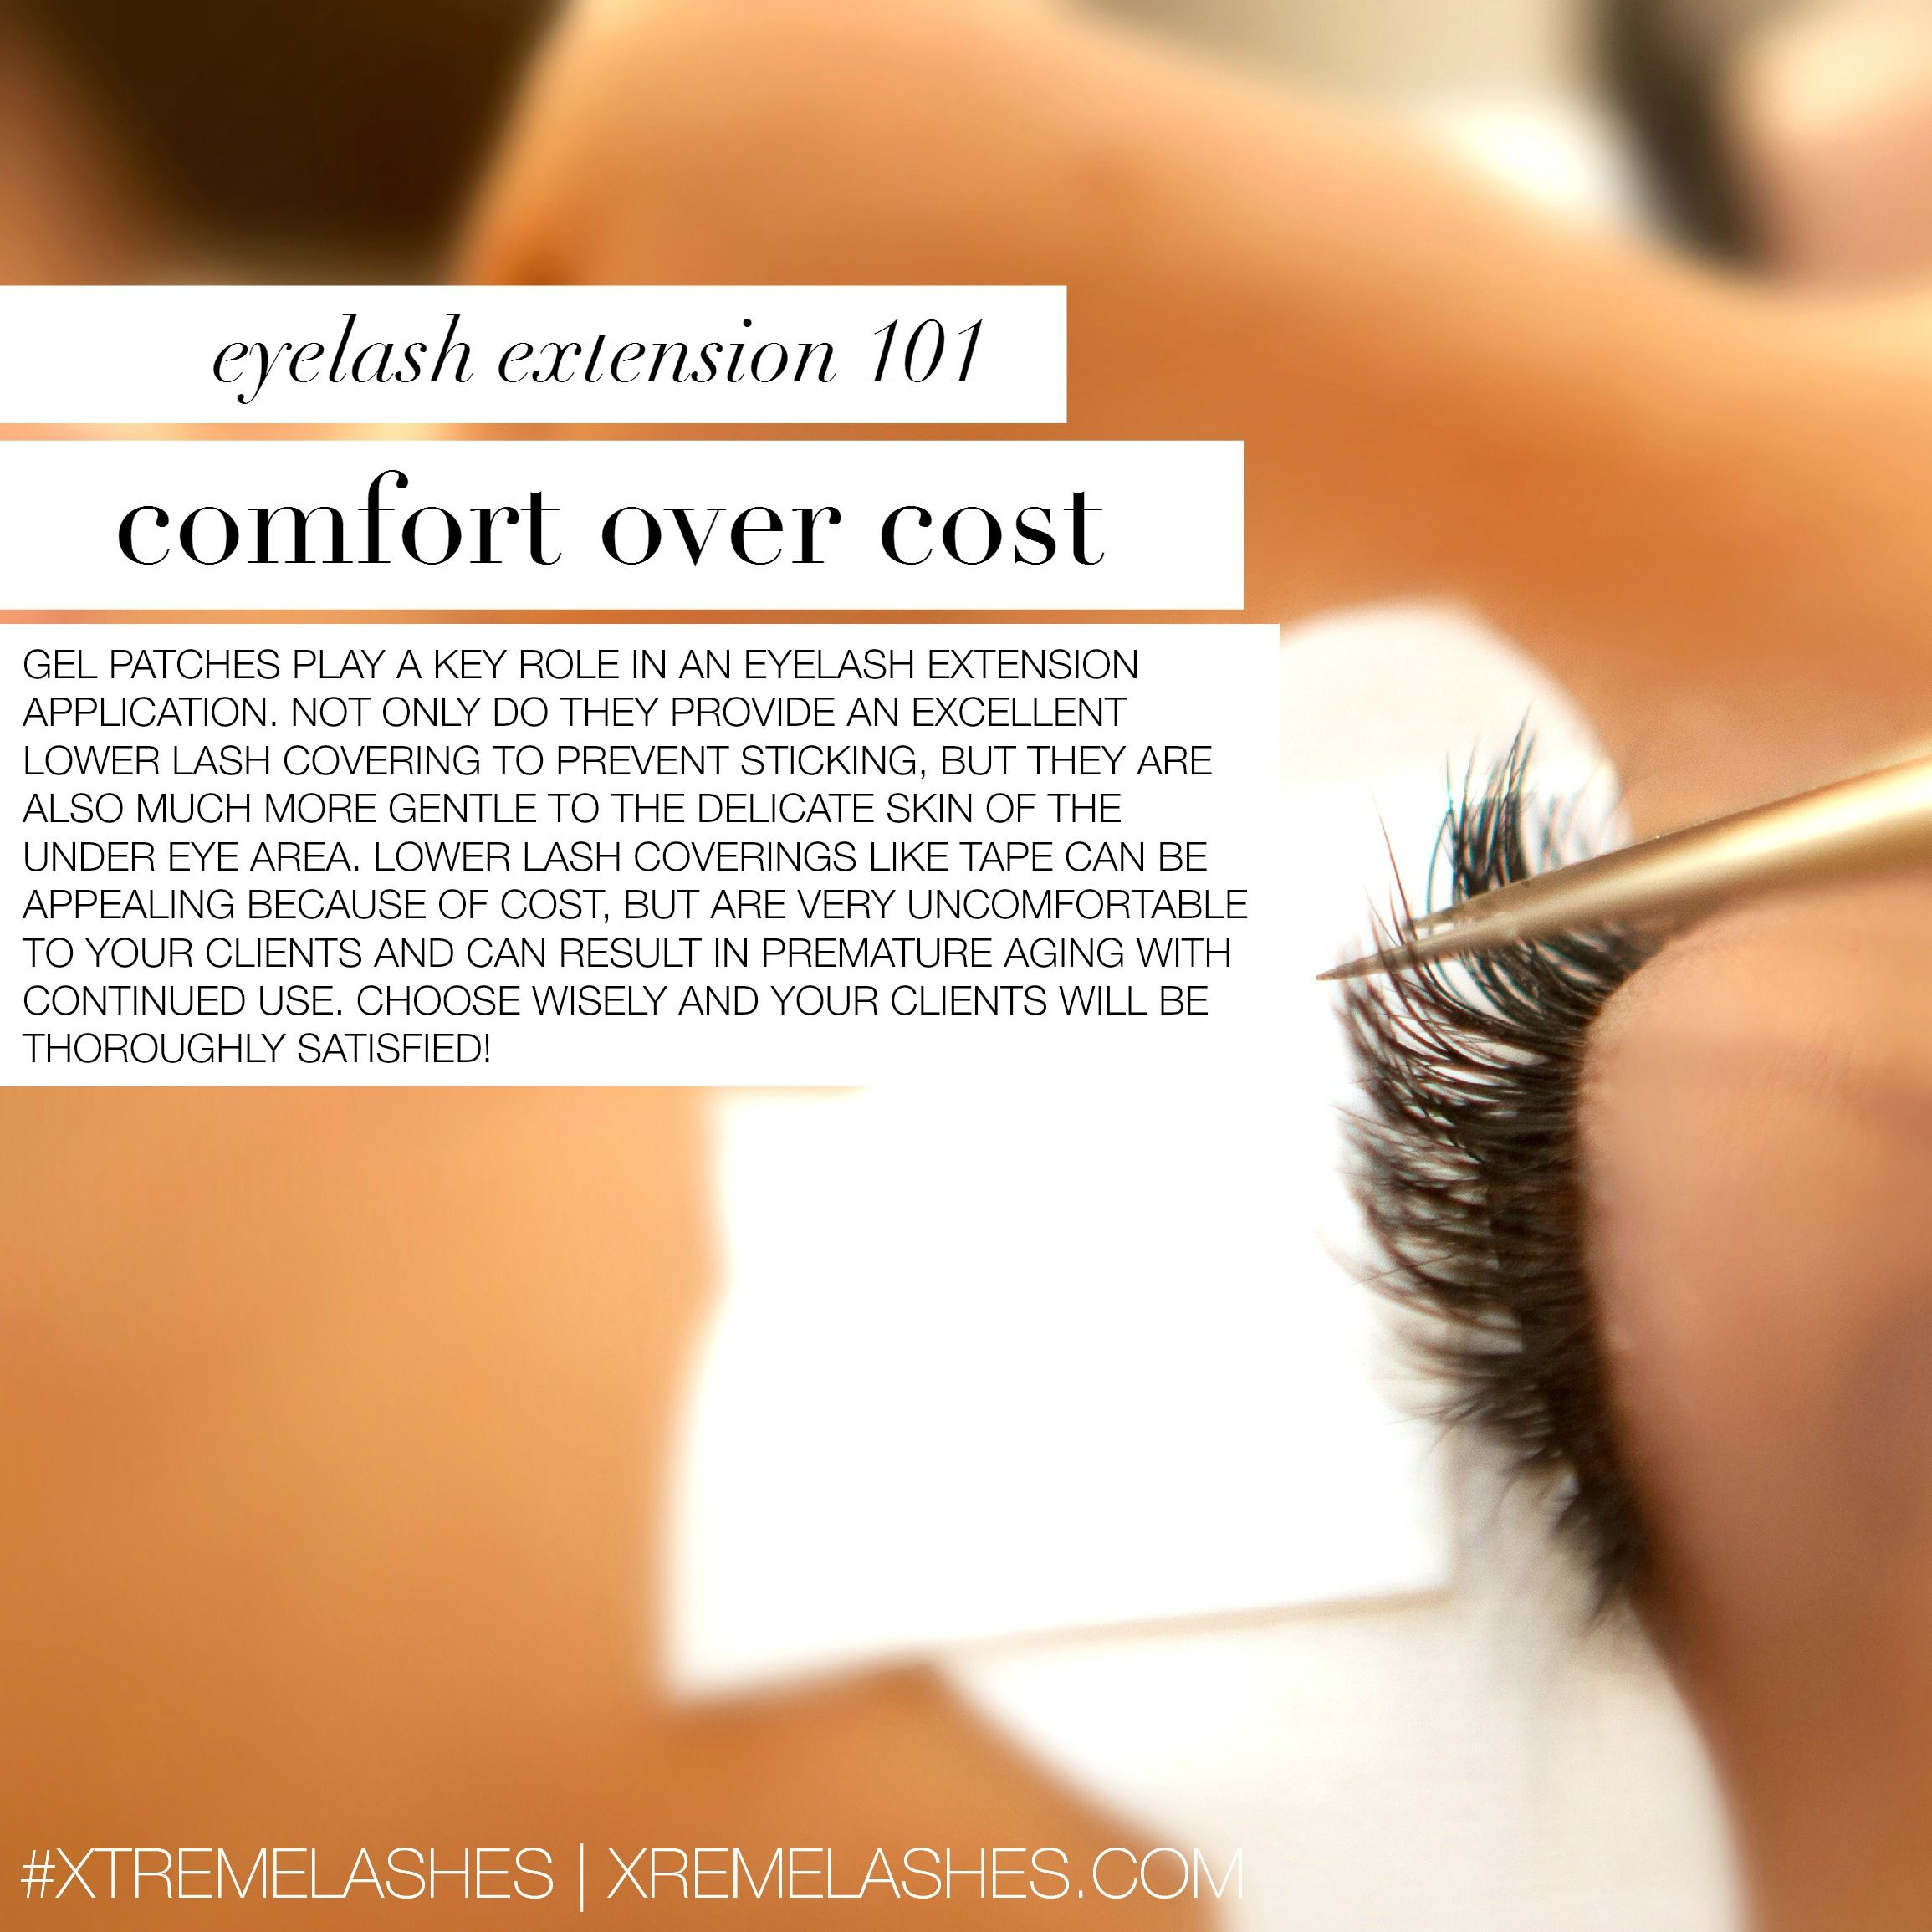 Eyelash Extension 101 by Xtreme Lashes | All Things Eyelash